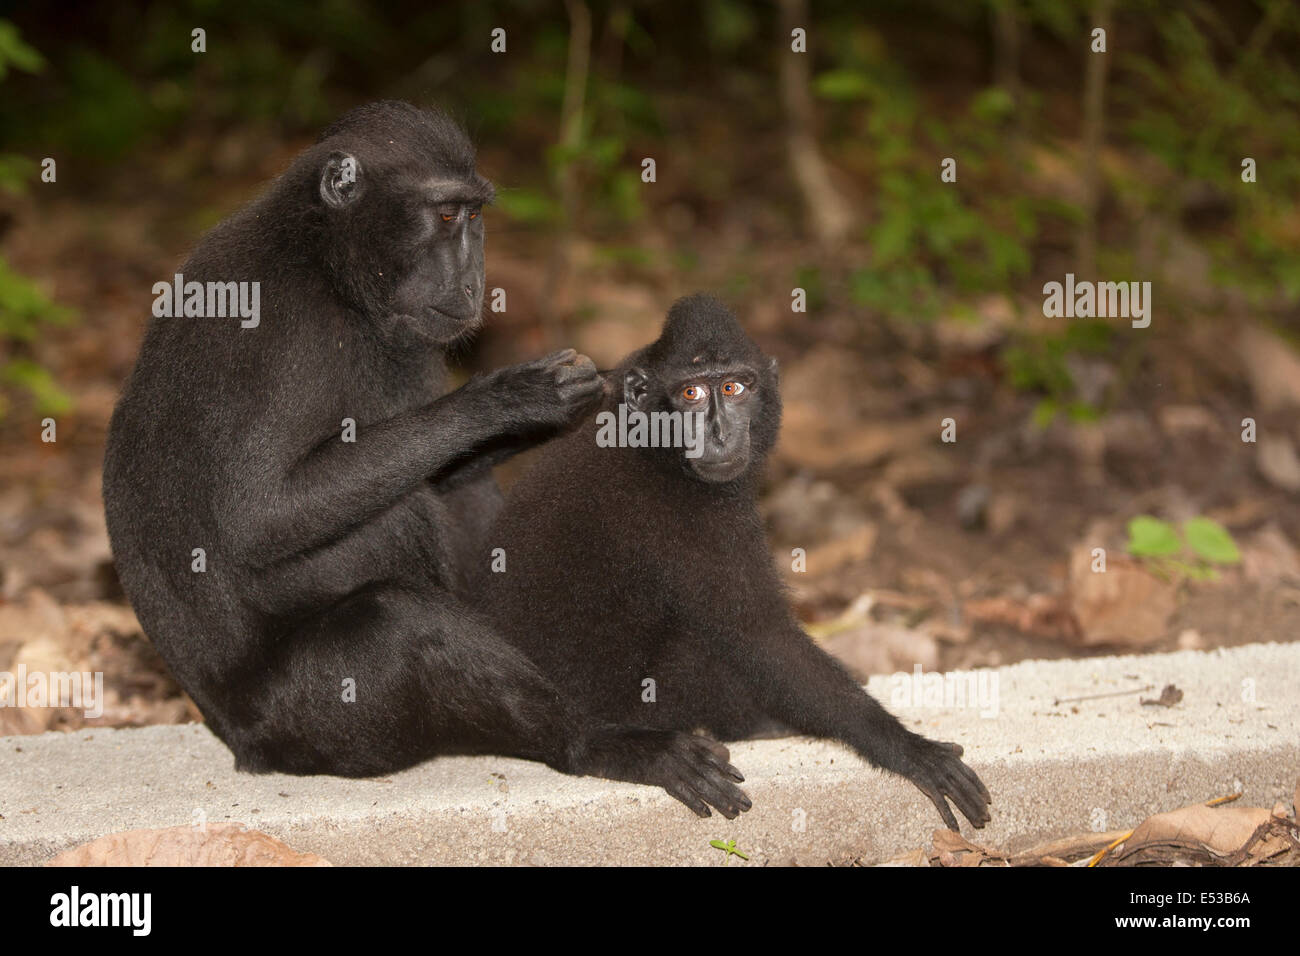 Grooming black crested macaque - Stock Image